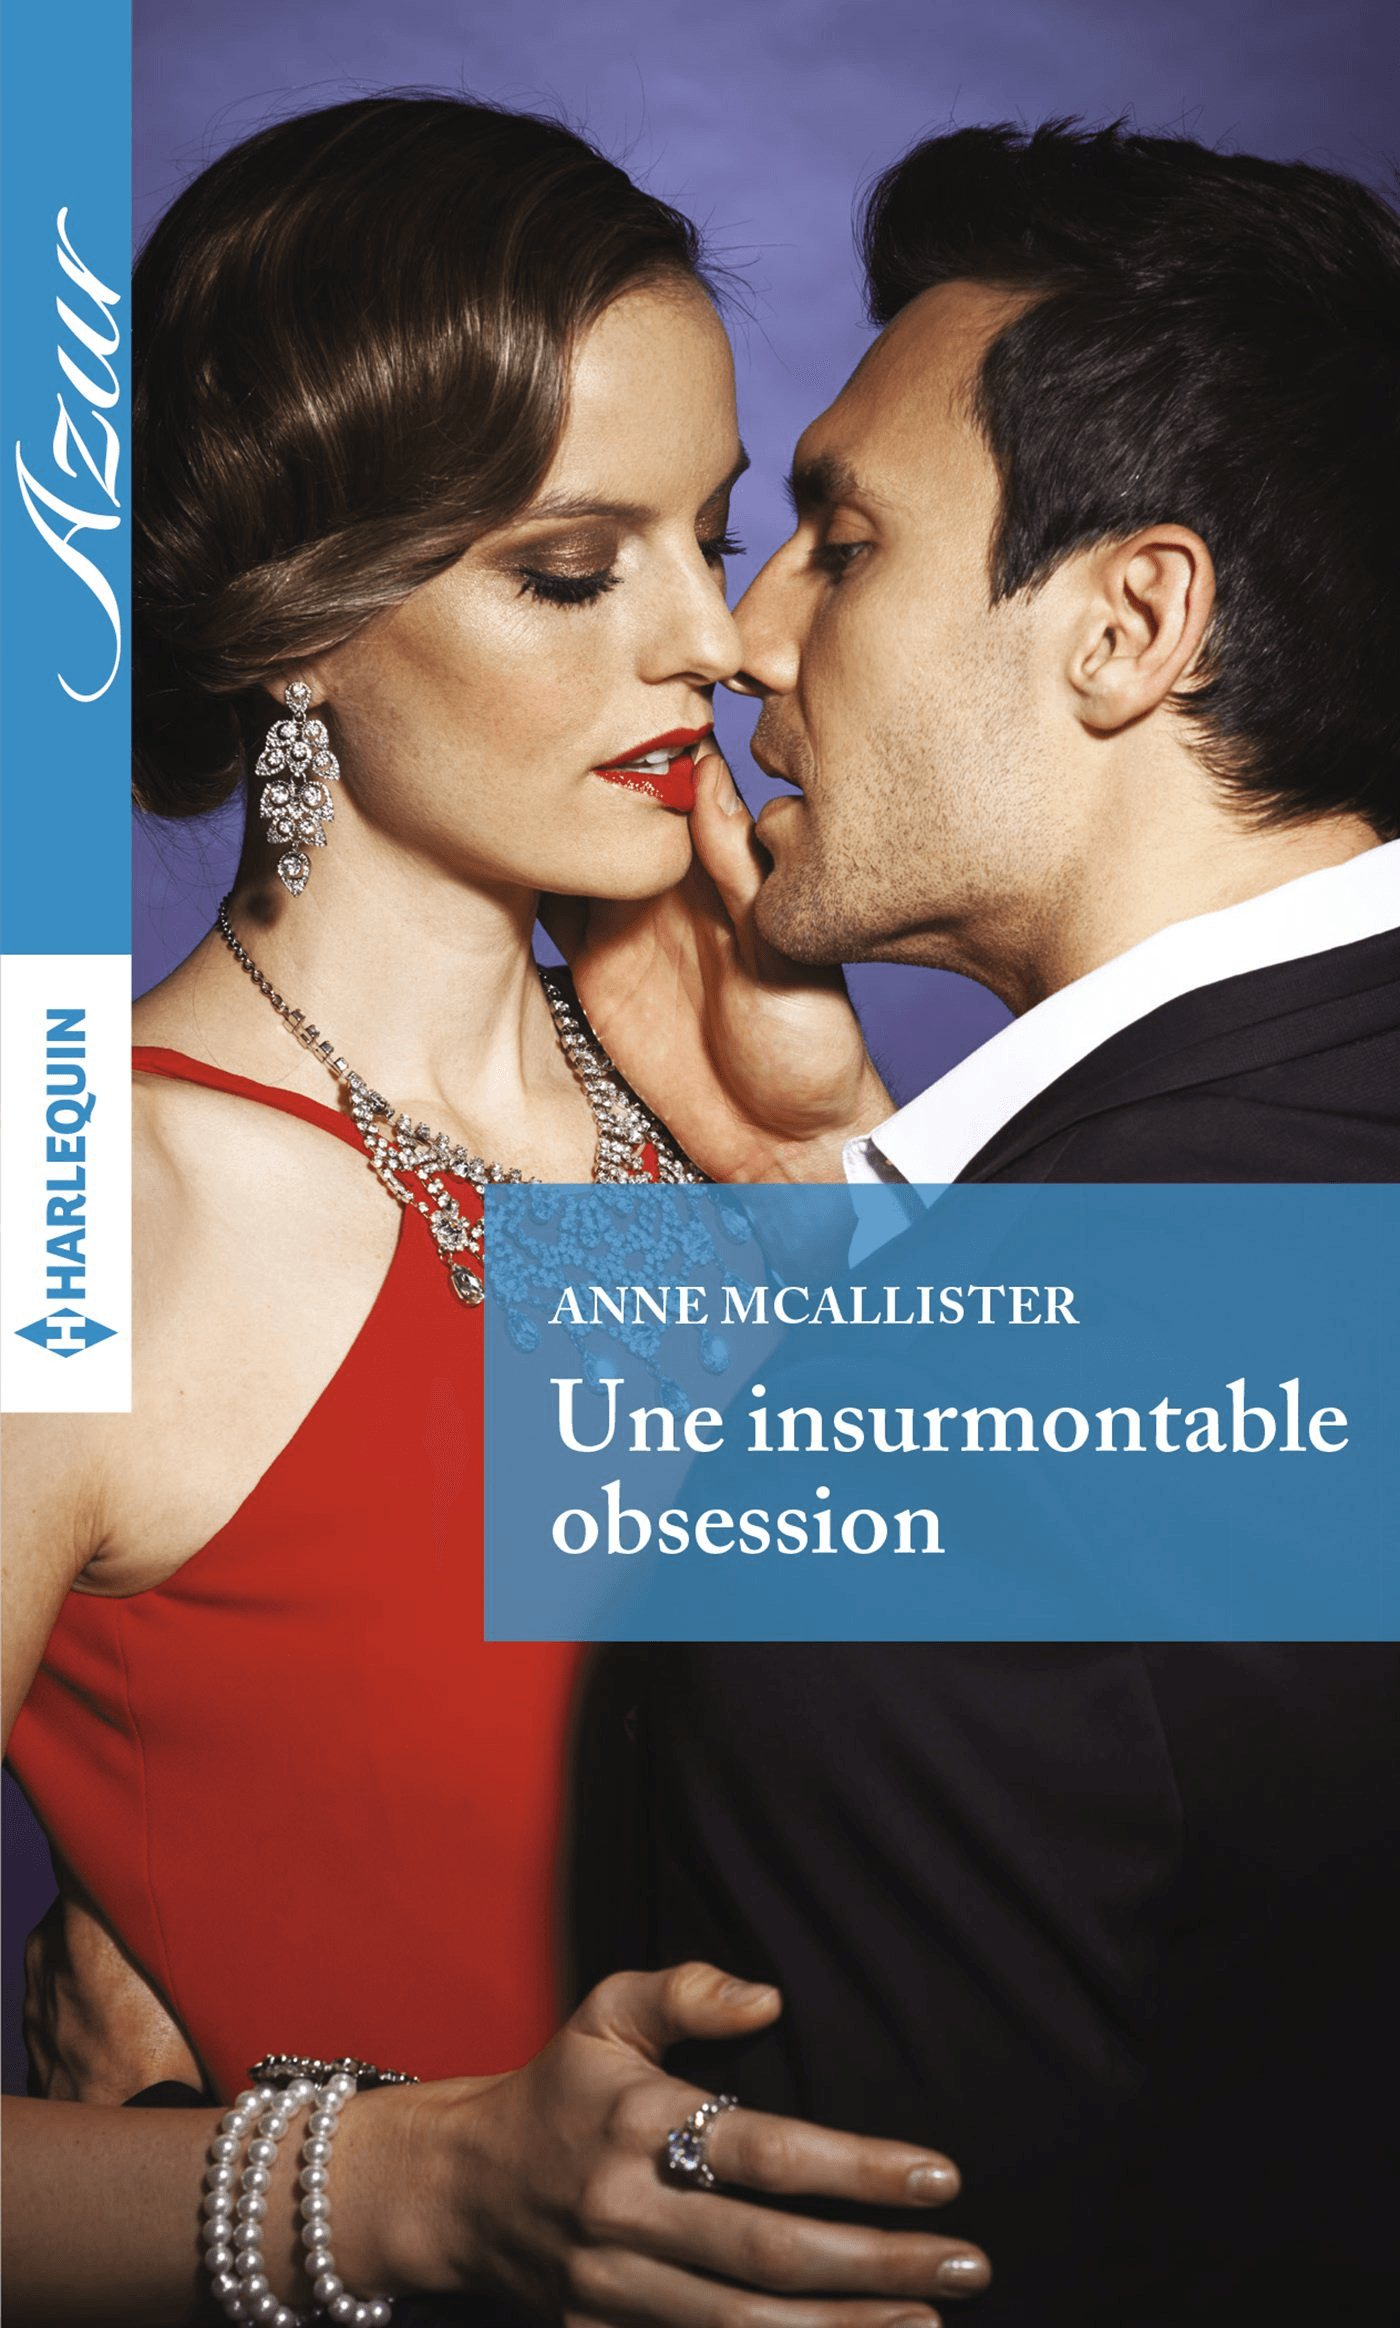 Couverture : Anne McAllister, Une insurmontable obsession, Harlequin